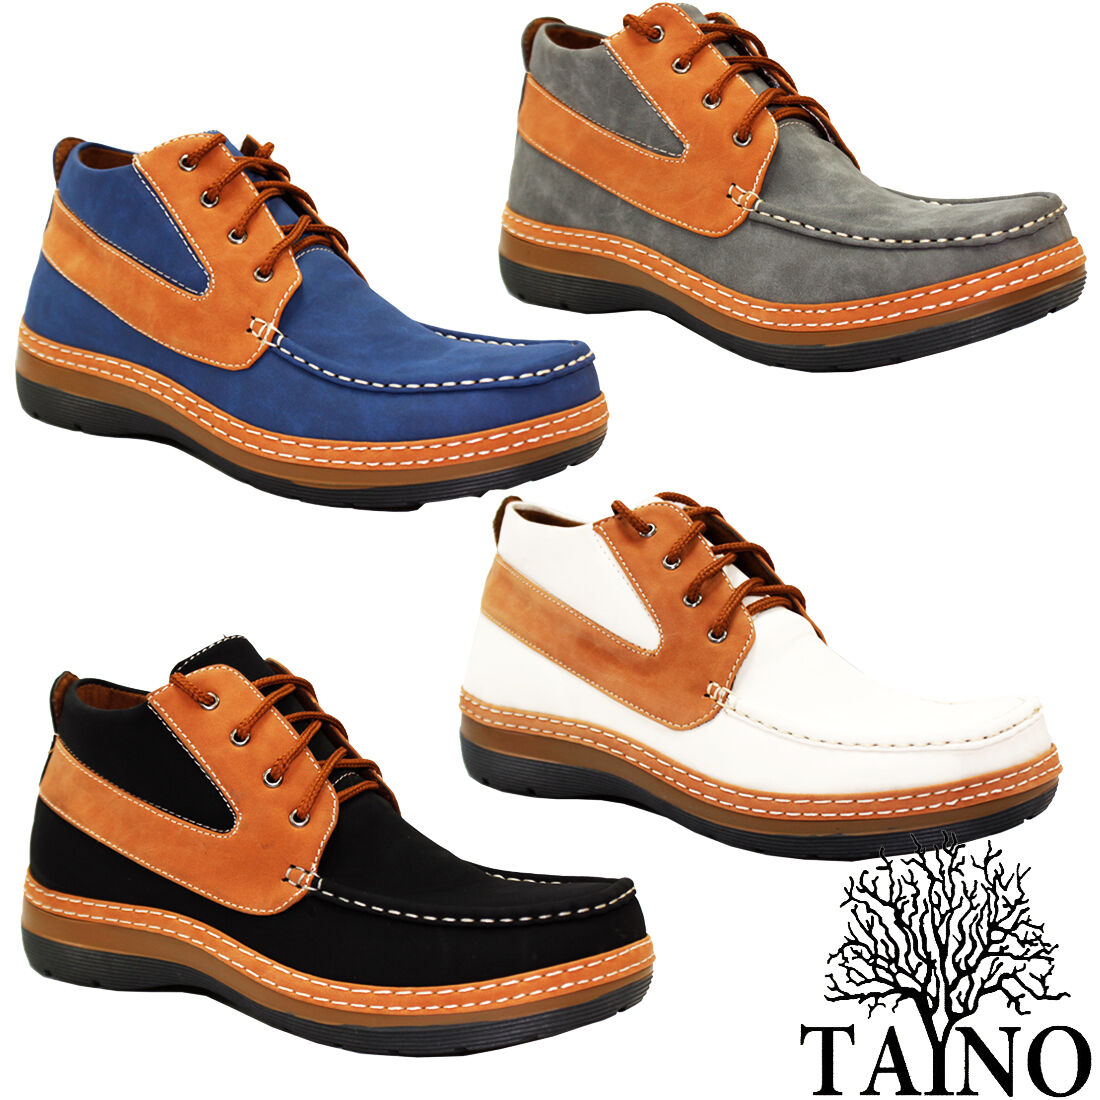 NEW TAYNO Fashion SHOES LOAFERS Casual DRESS Fashion TAYNO Driving Moccasins Shoes RUBEM 8be0c9